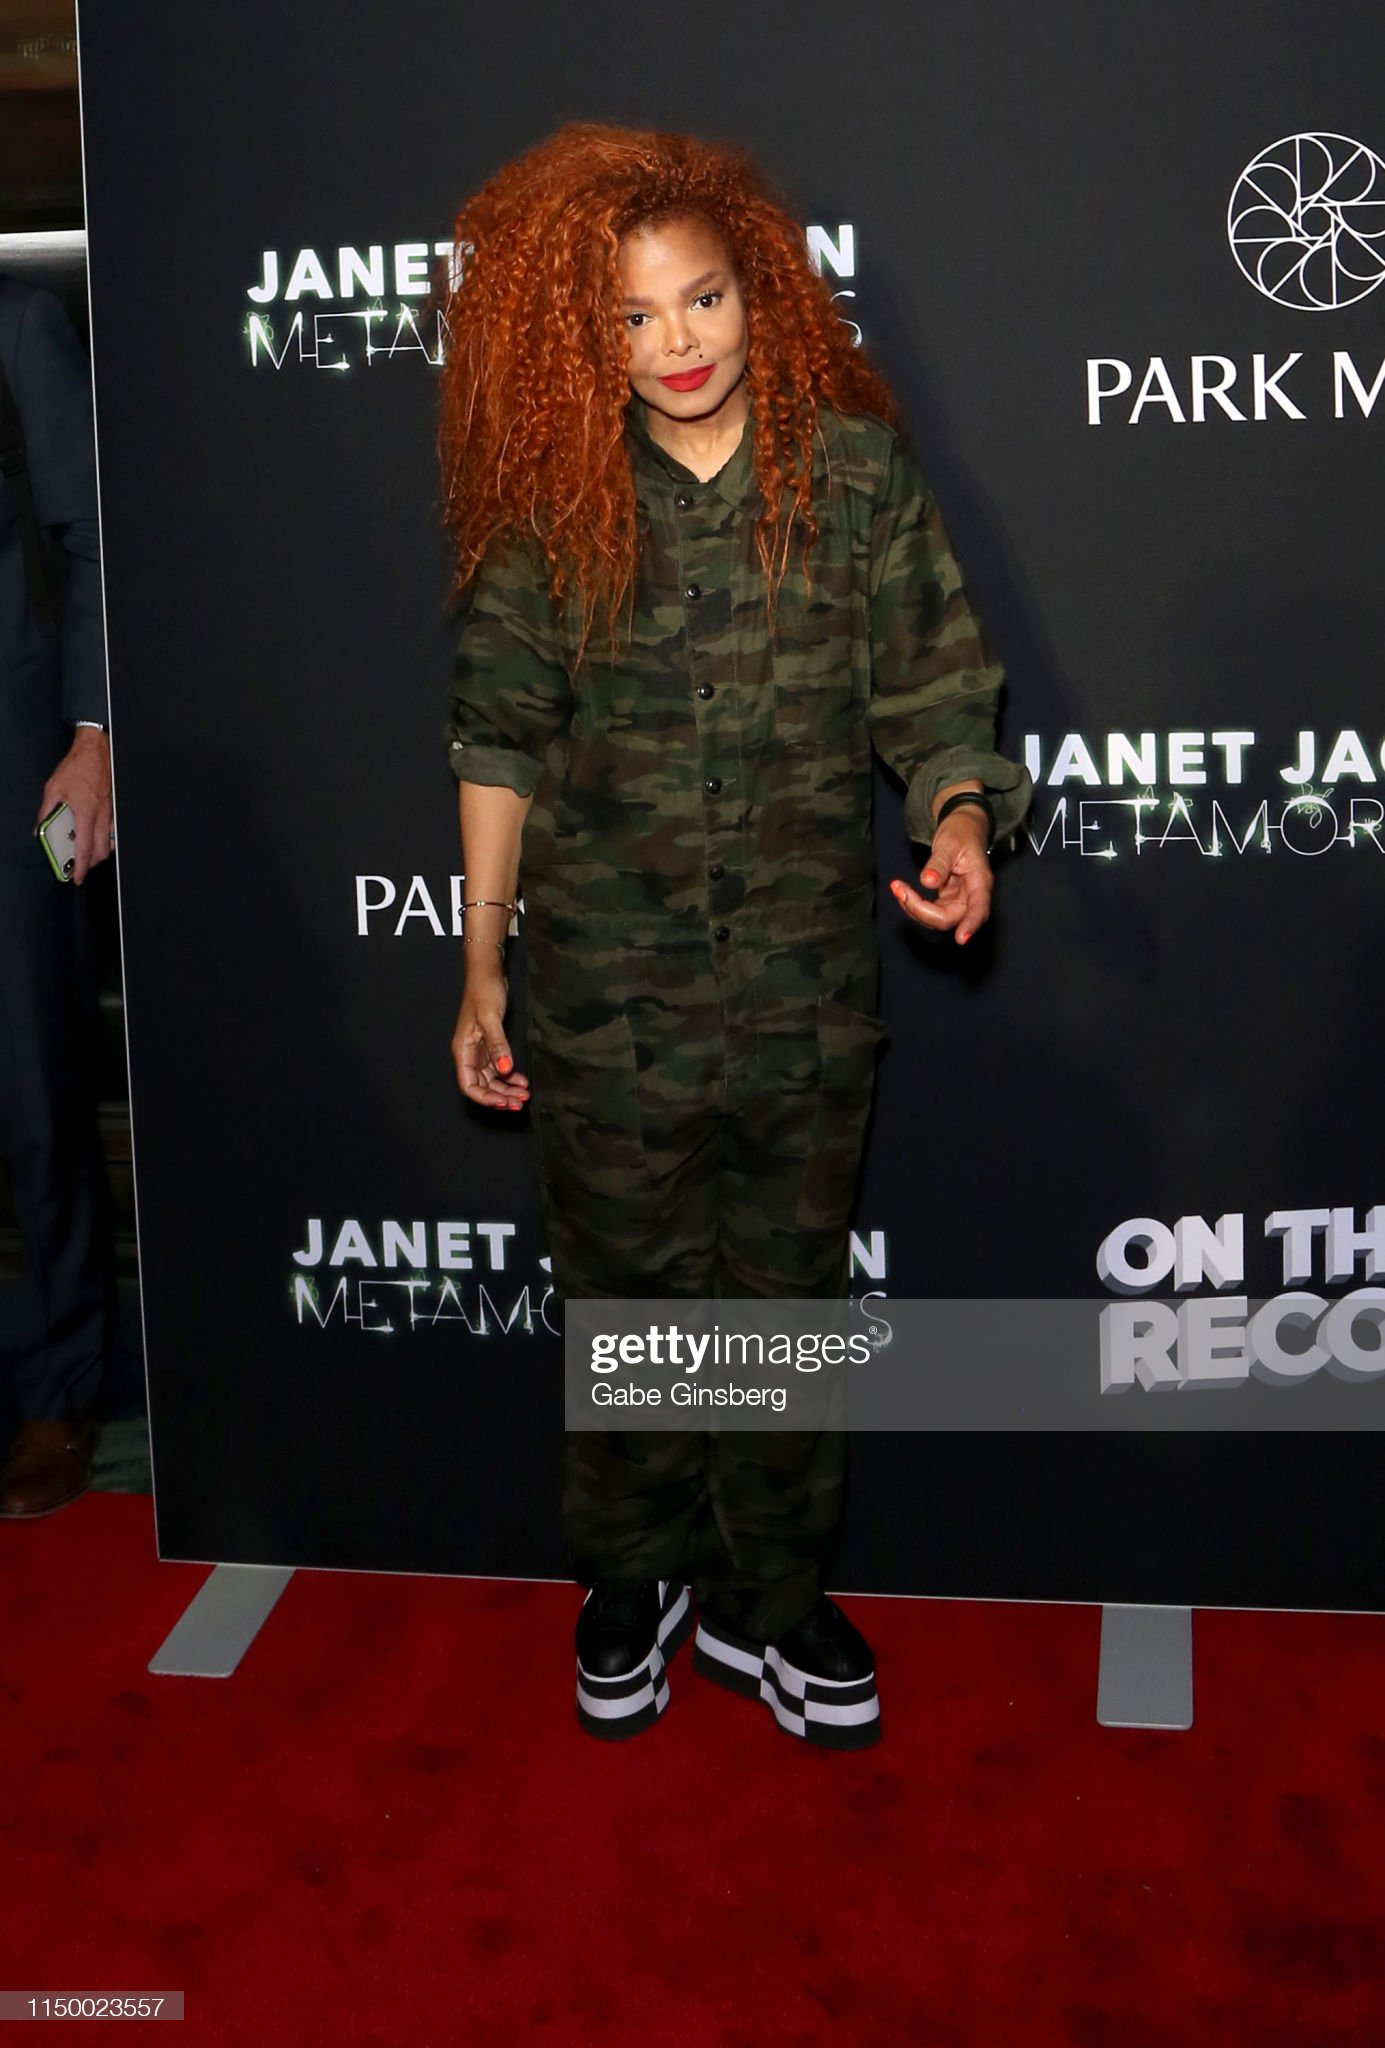 singer-janet-jackson-attends-the-after-p